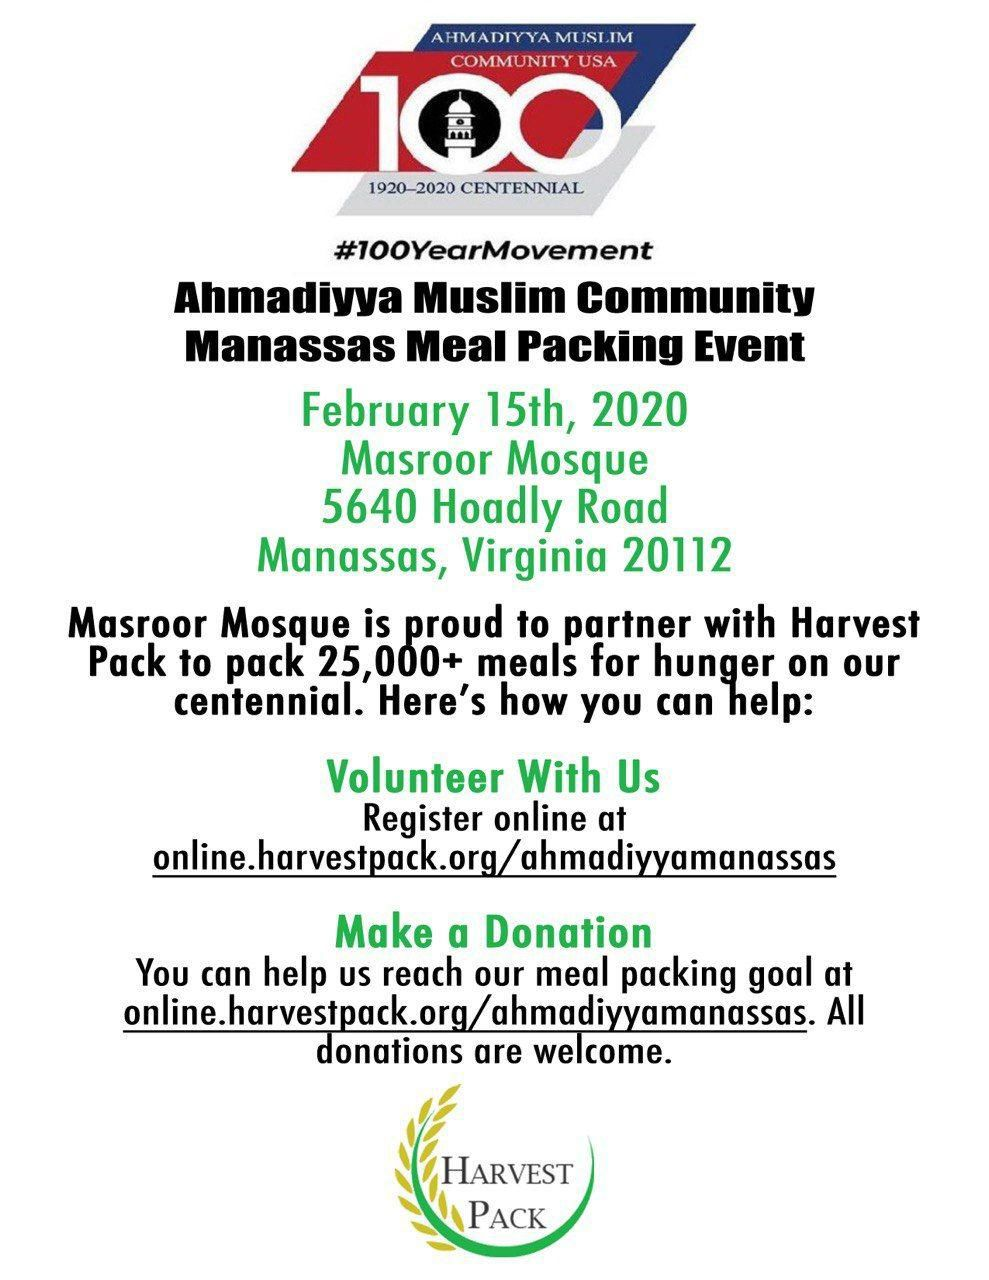 Meal Packaging Event Flyer